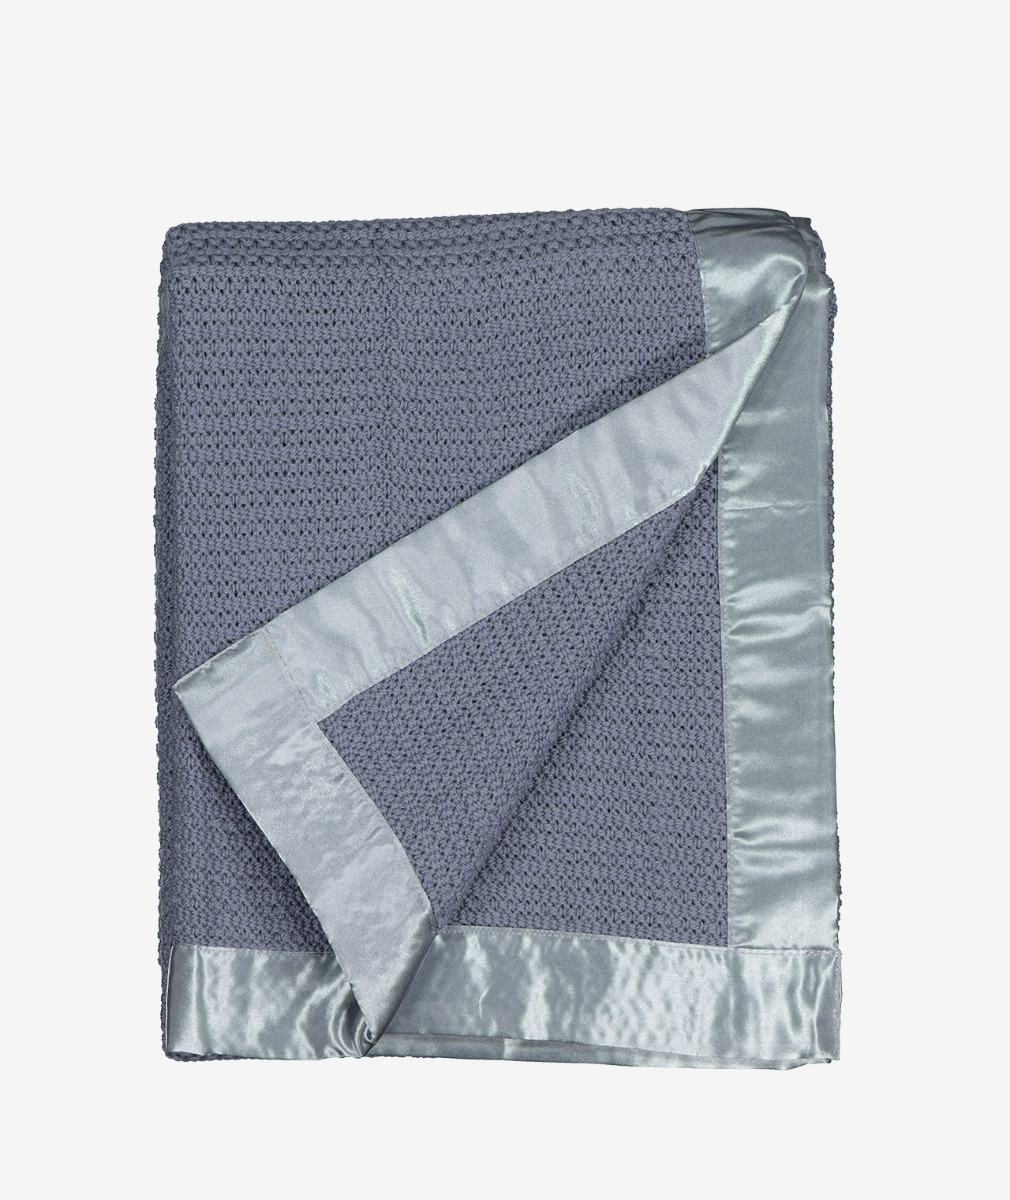 Swanndri Thermalweave Wool Cot Blanket in Grey